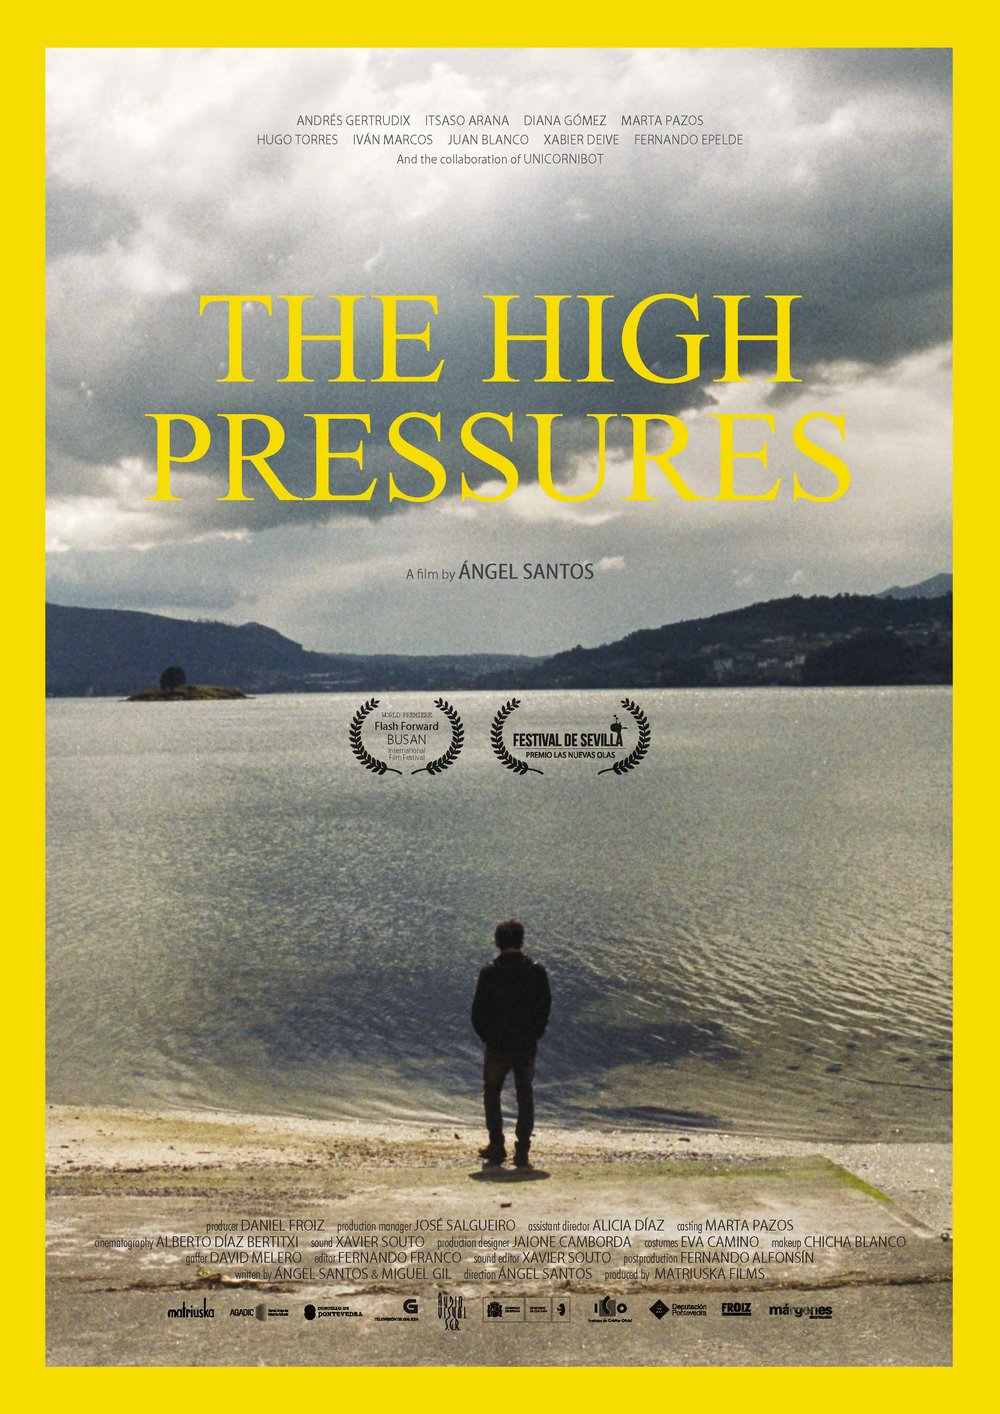 Copy of The High Pressures (Las altas presiones)